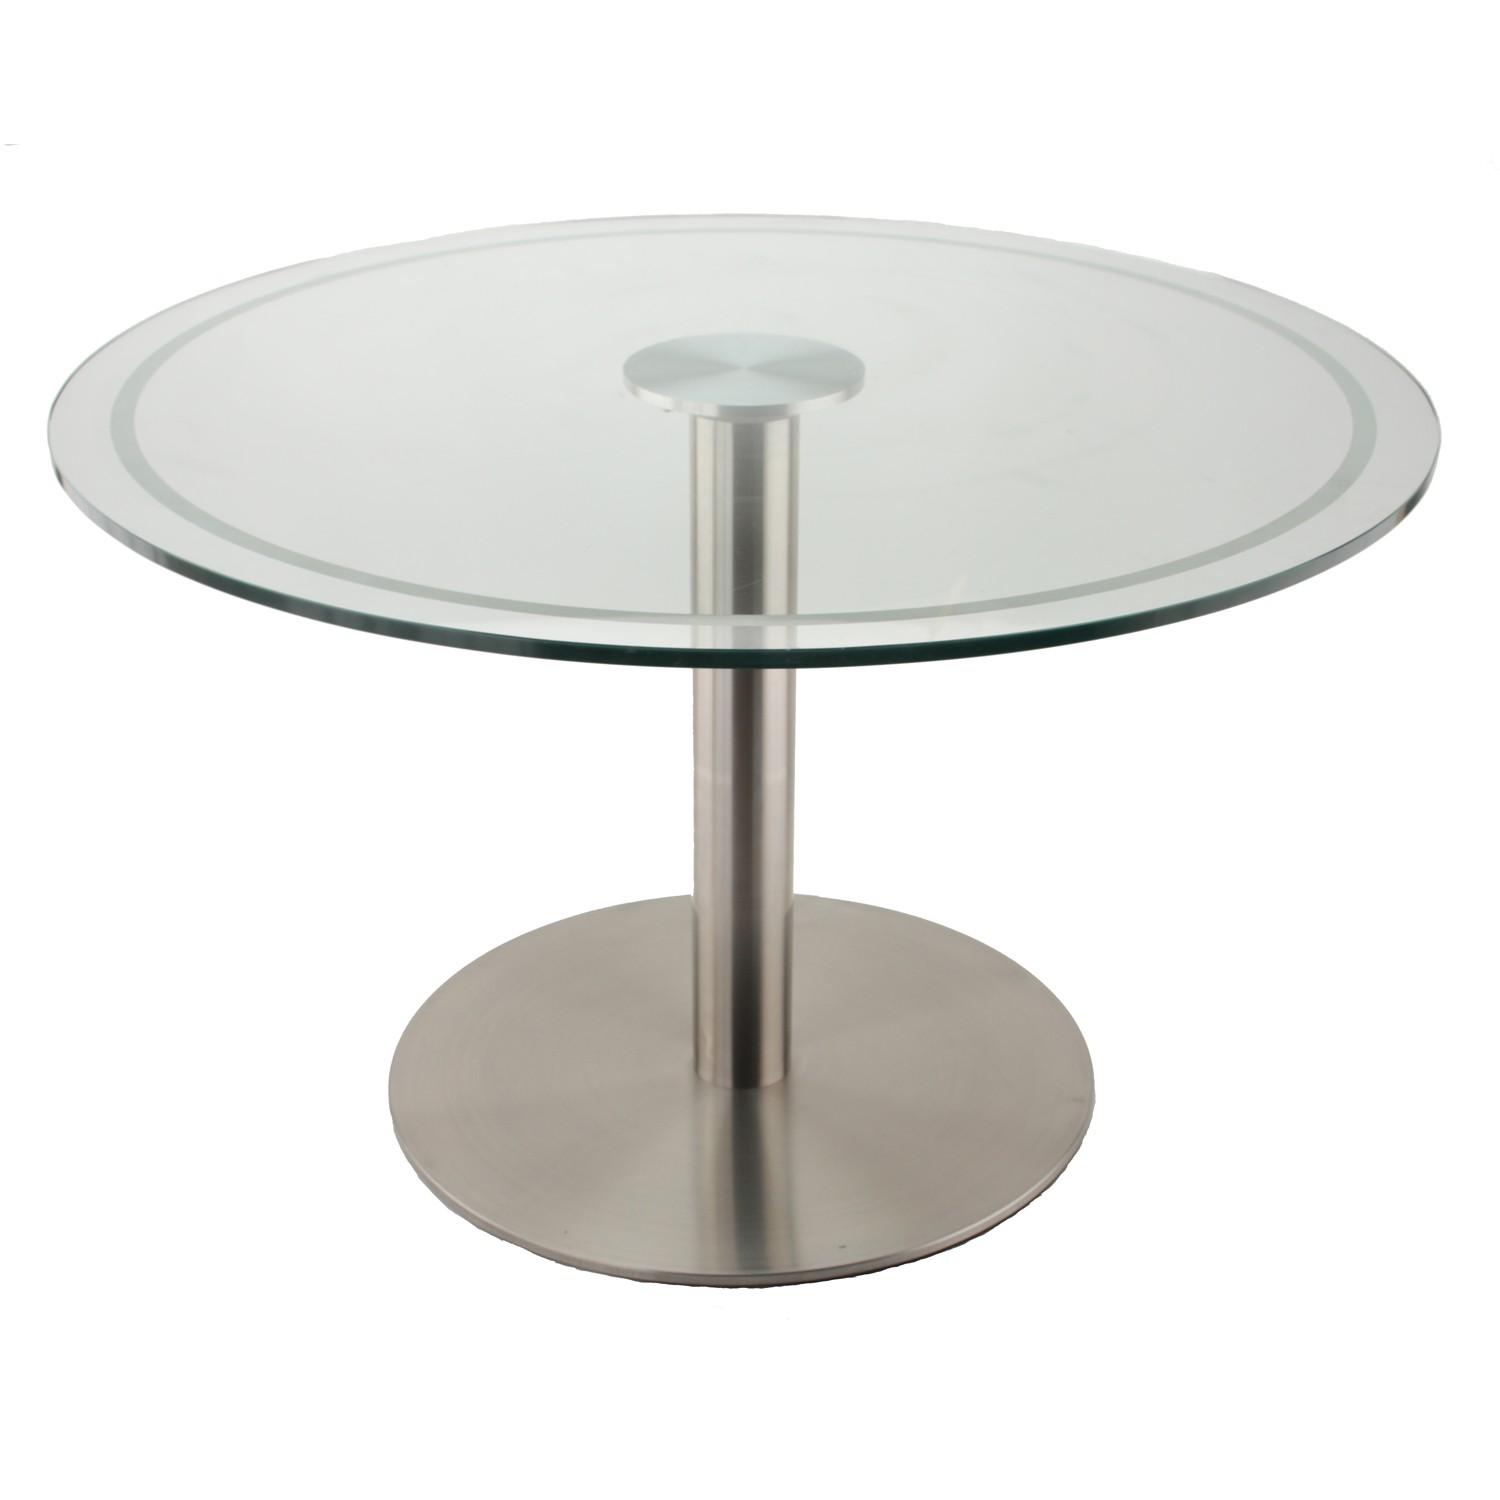 the rfl750 stainless steel table base with glass table top, using our glass ERLBGQD